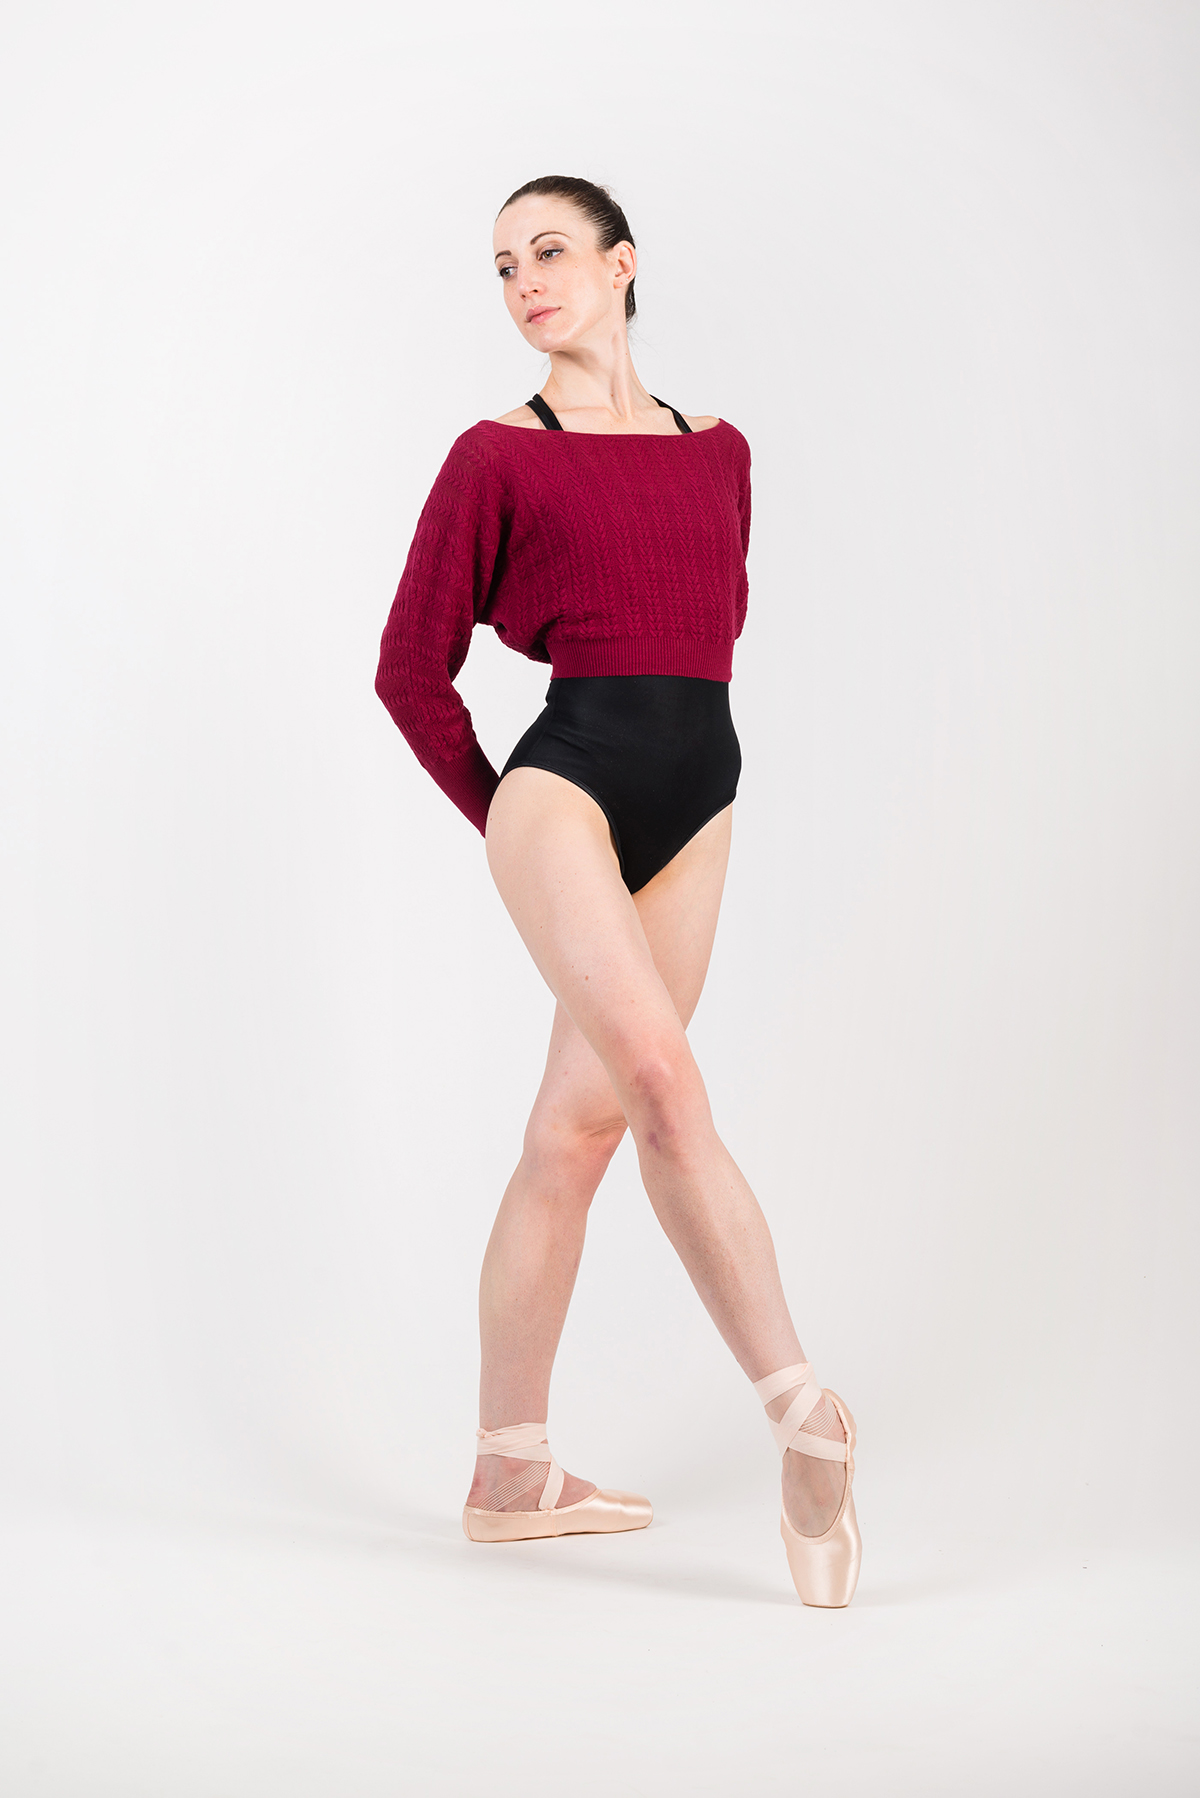 Bloch Tabor Z6999 Burgundy limited edition pullover